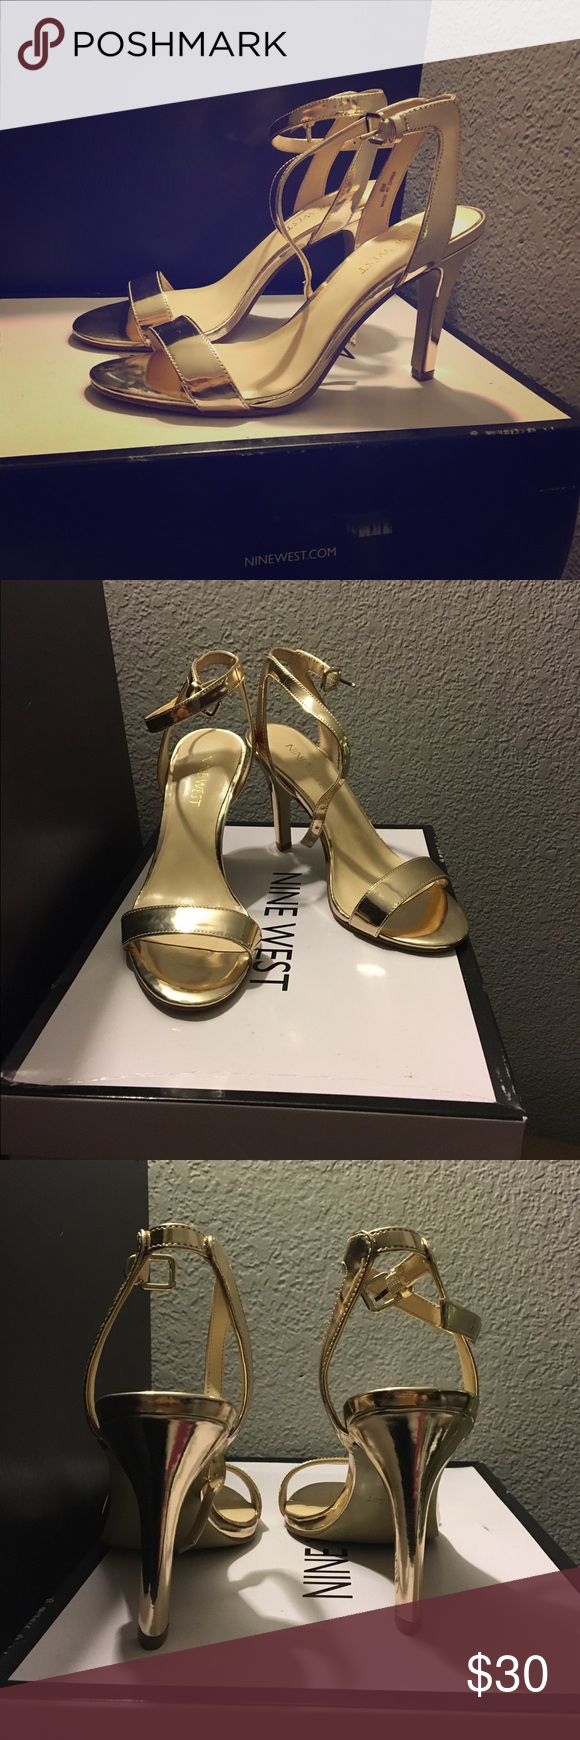 Gold strap heels Nine West all gold strap sandal heels. Size 6. The name of the style is 'Anistono Lama', super cute! I bought them for a ball to match my dress and probably won't wear them again but they were super comfortable and they've only been worn once! 😊 The heel is about 2 inches high, so just enough to add the extra glam and comfy enough to dance in! I usually wear a size 6 - 6 1/2 and these fit perfectly Nine West Shoes Heels